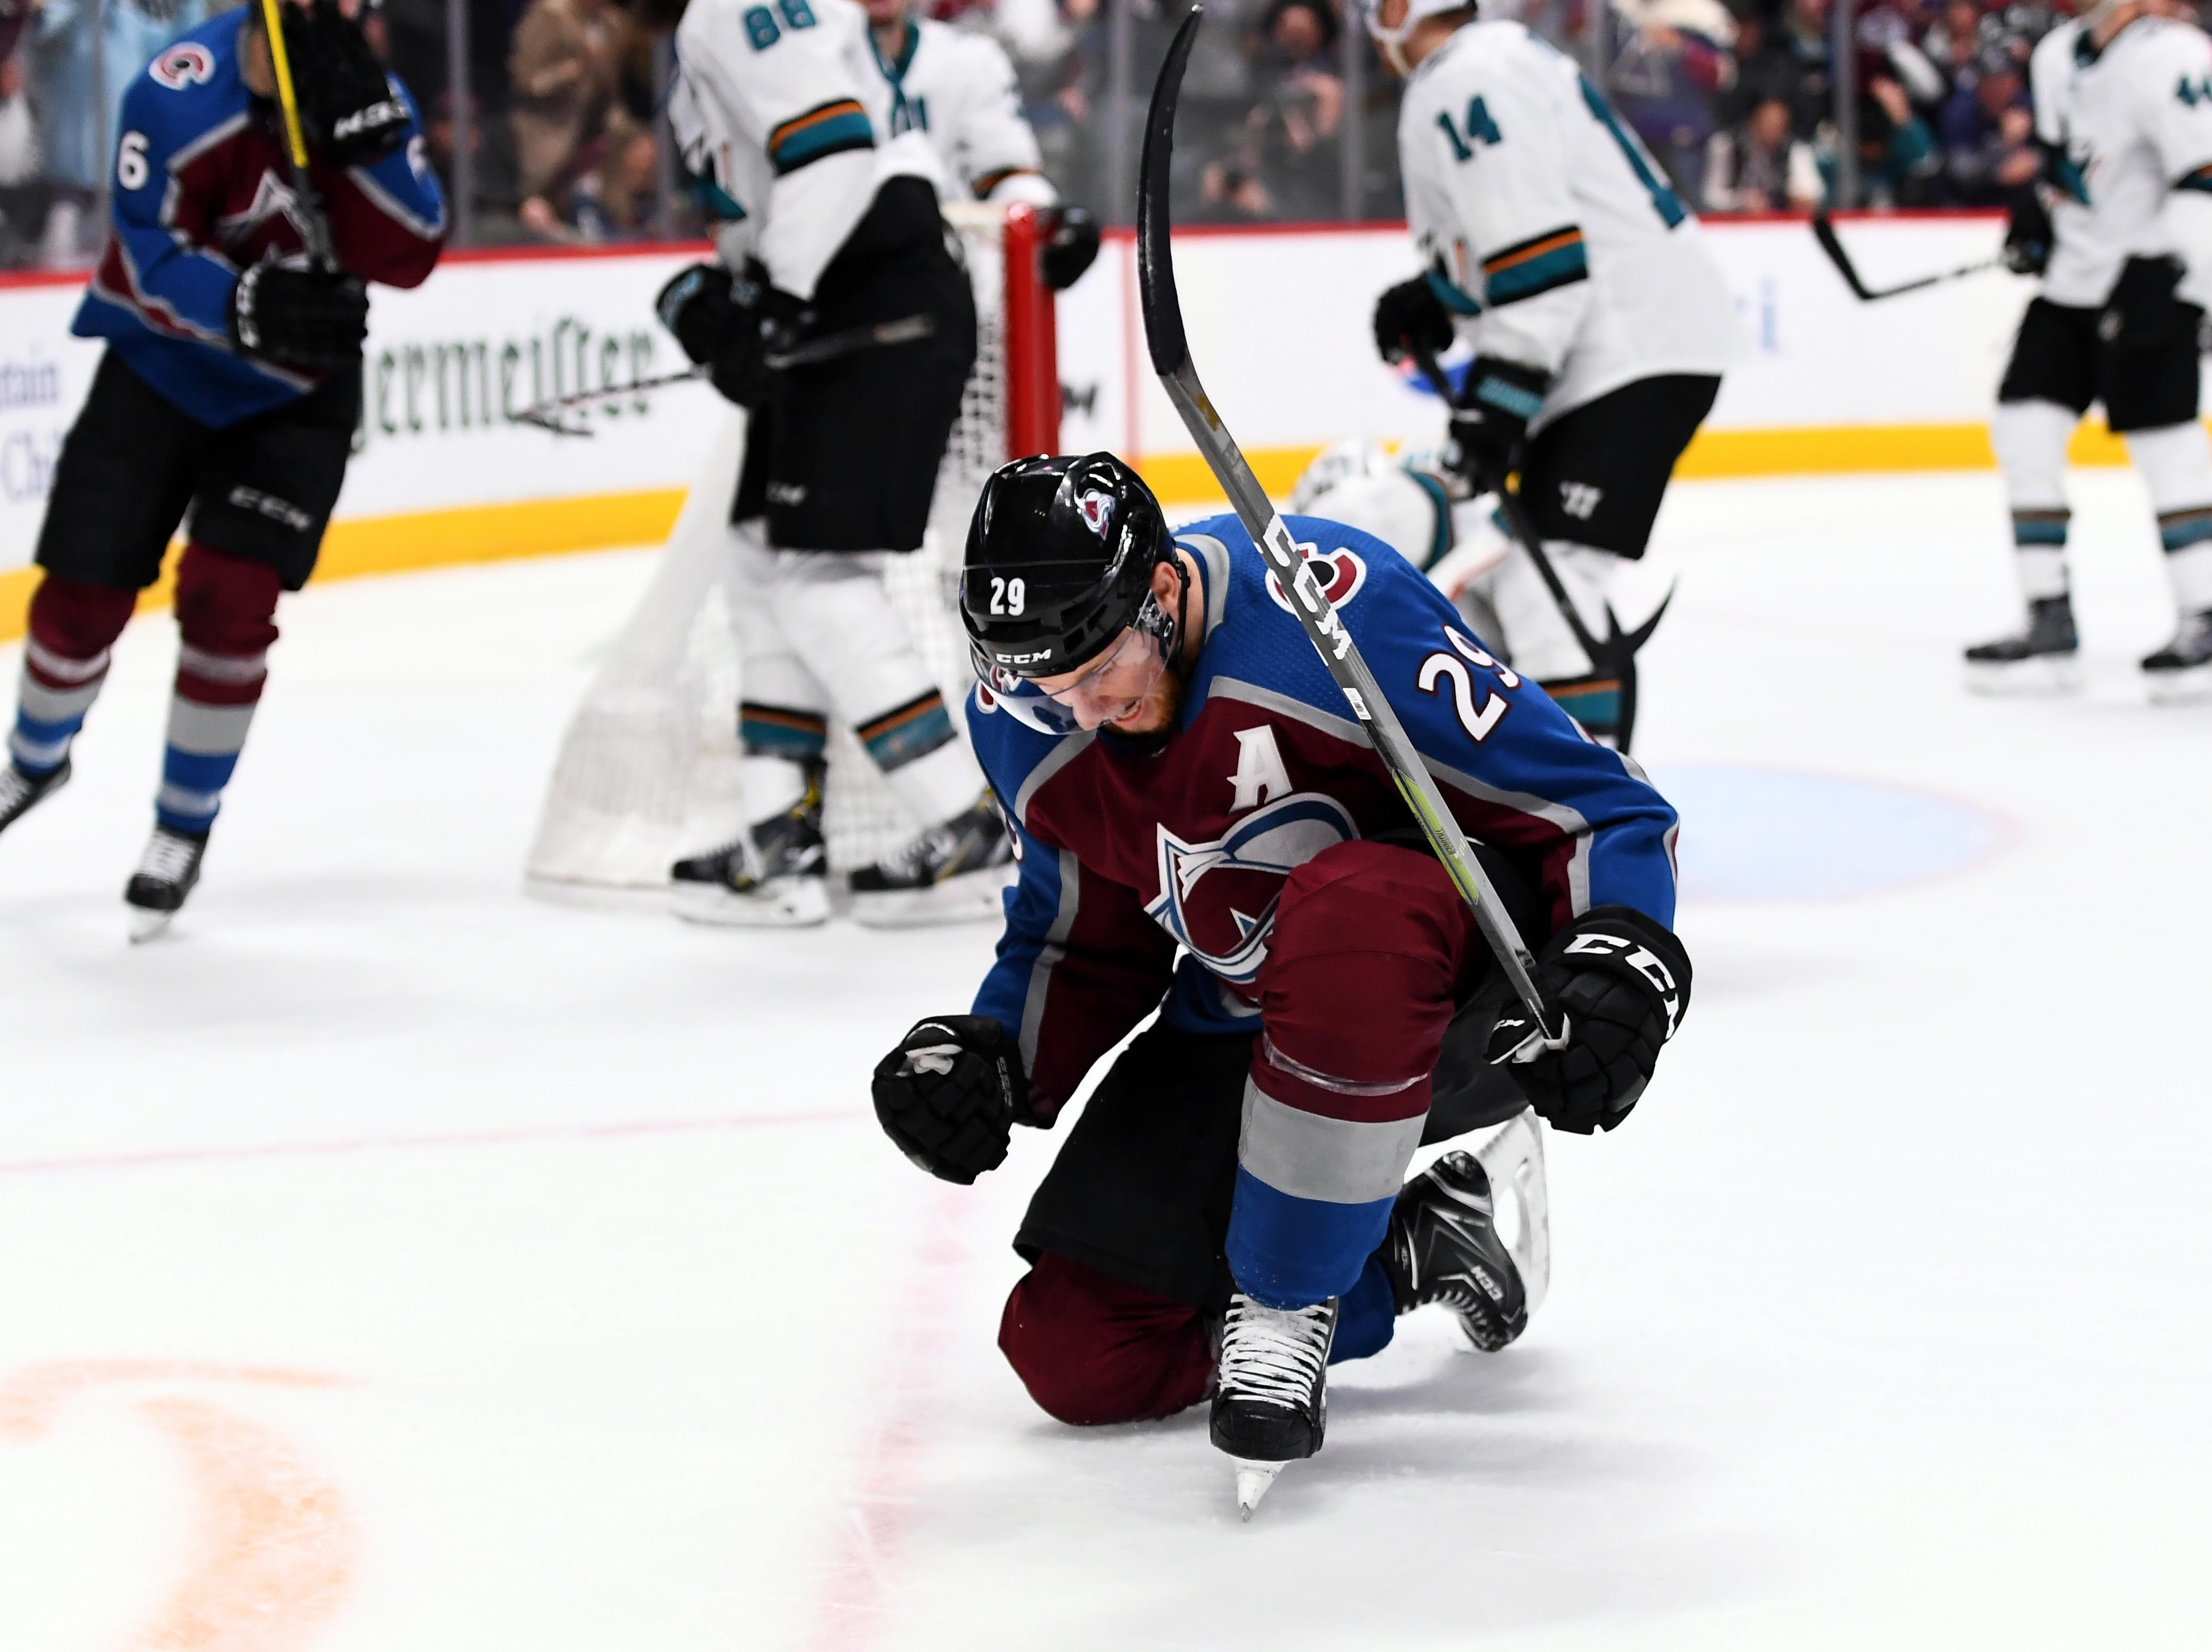 Second round: Colorado Avalanche center Nathan MacKinnon celebrates his goal in the second period in Game 4 against the San Jose Sharks.